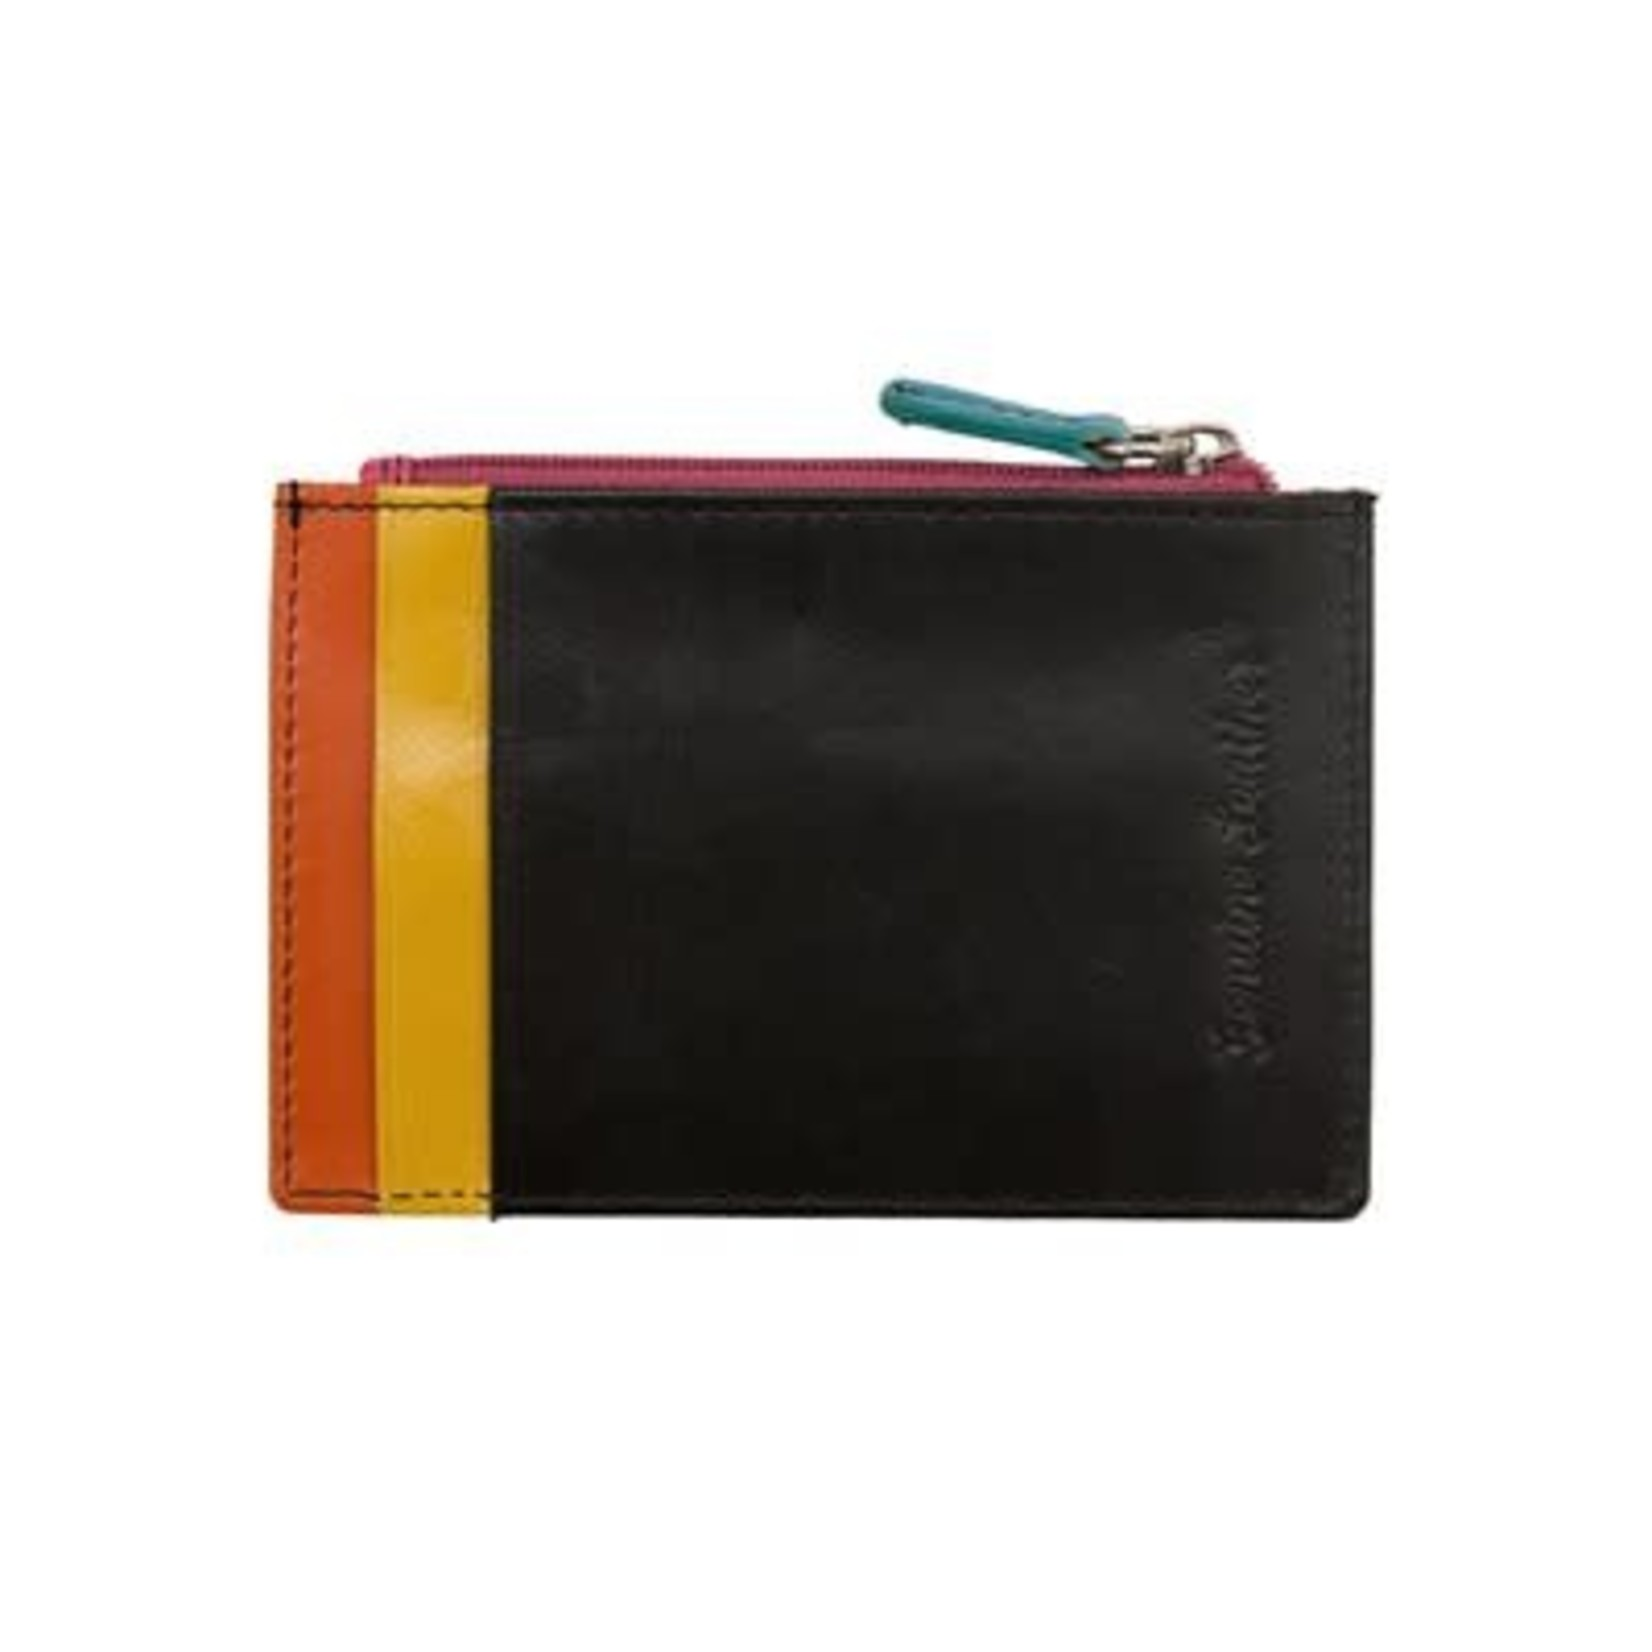 Leather Handbags and Accessories 7416 Black Brights - RFID Card Holder